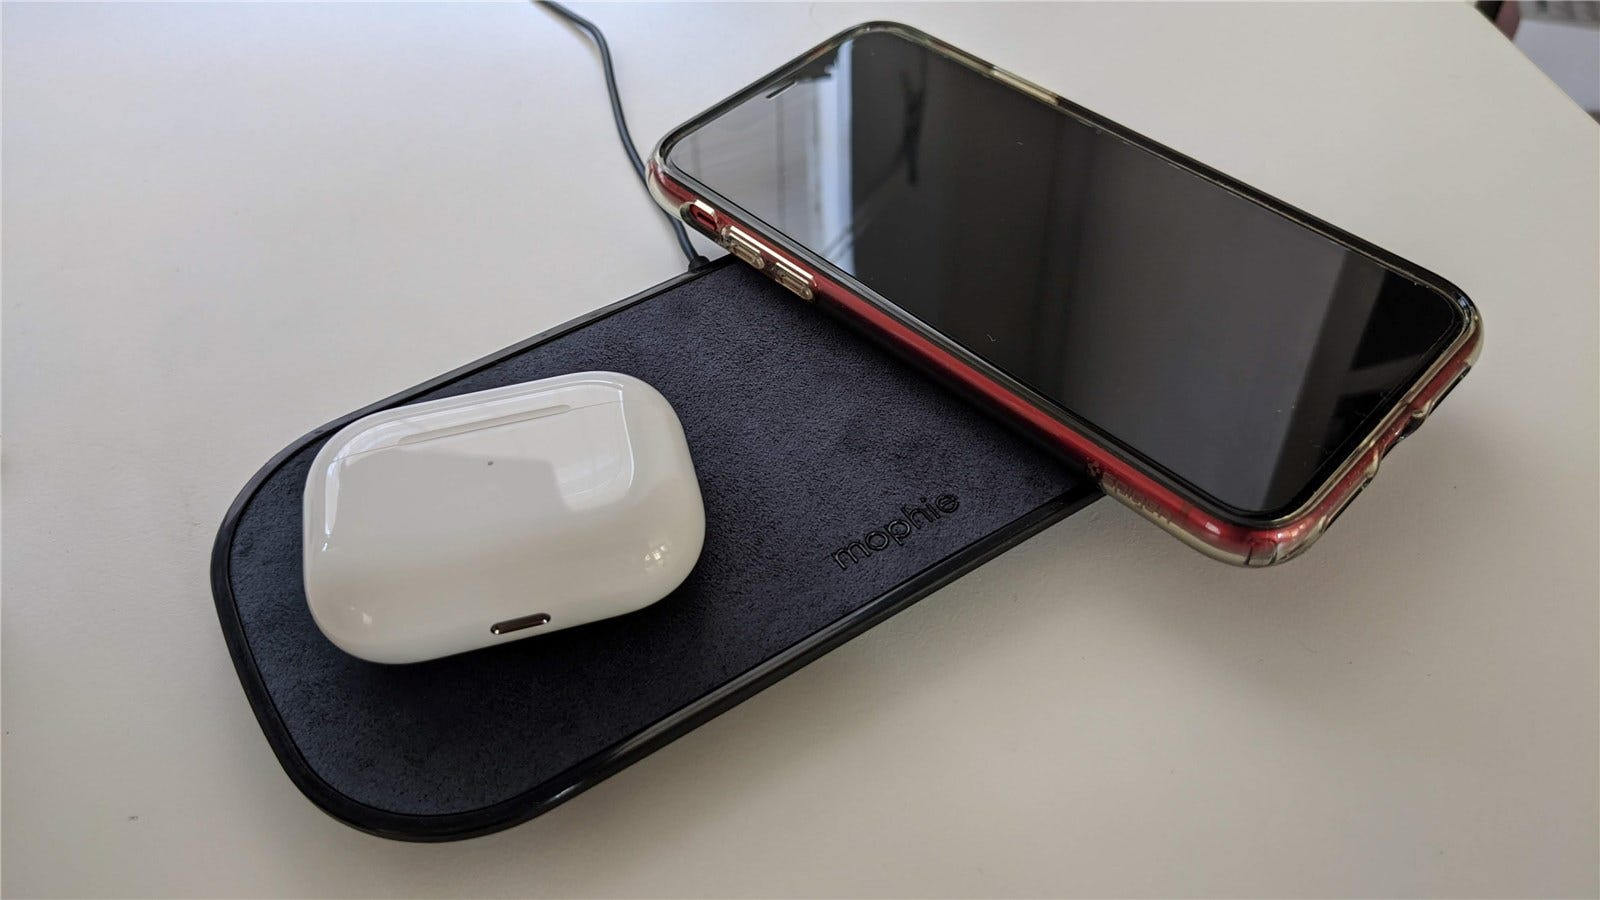 The Mophie Dual Wireless Charging Pad with AirPods and an iPhone XR on it